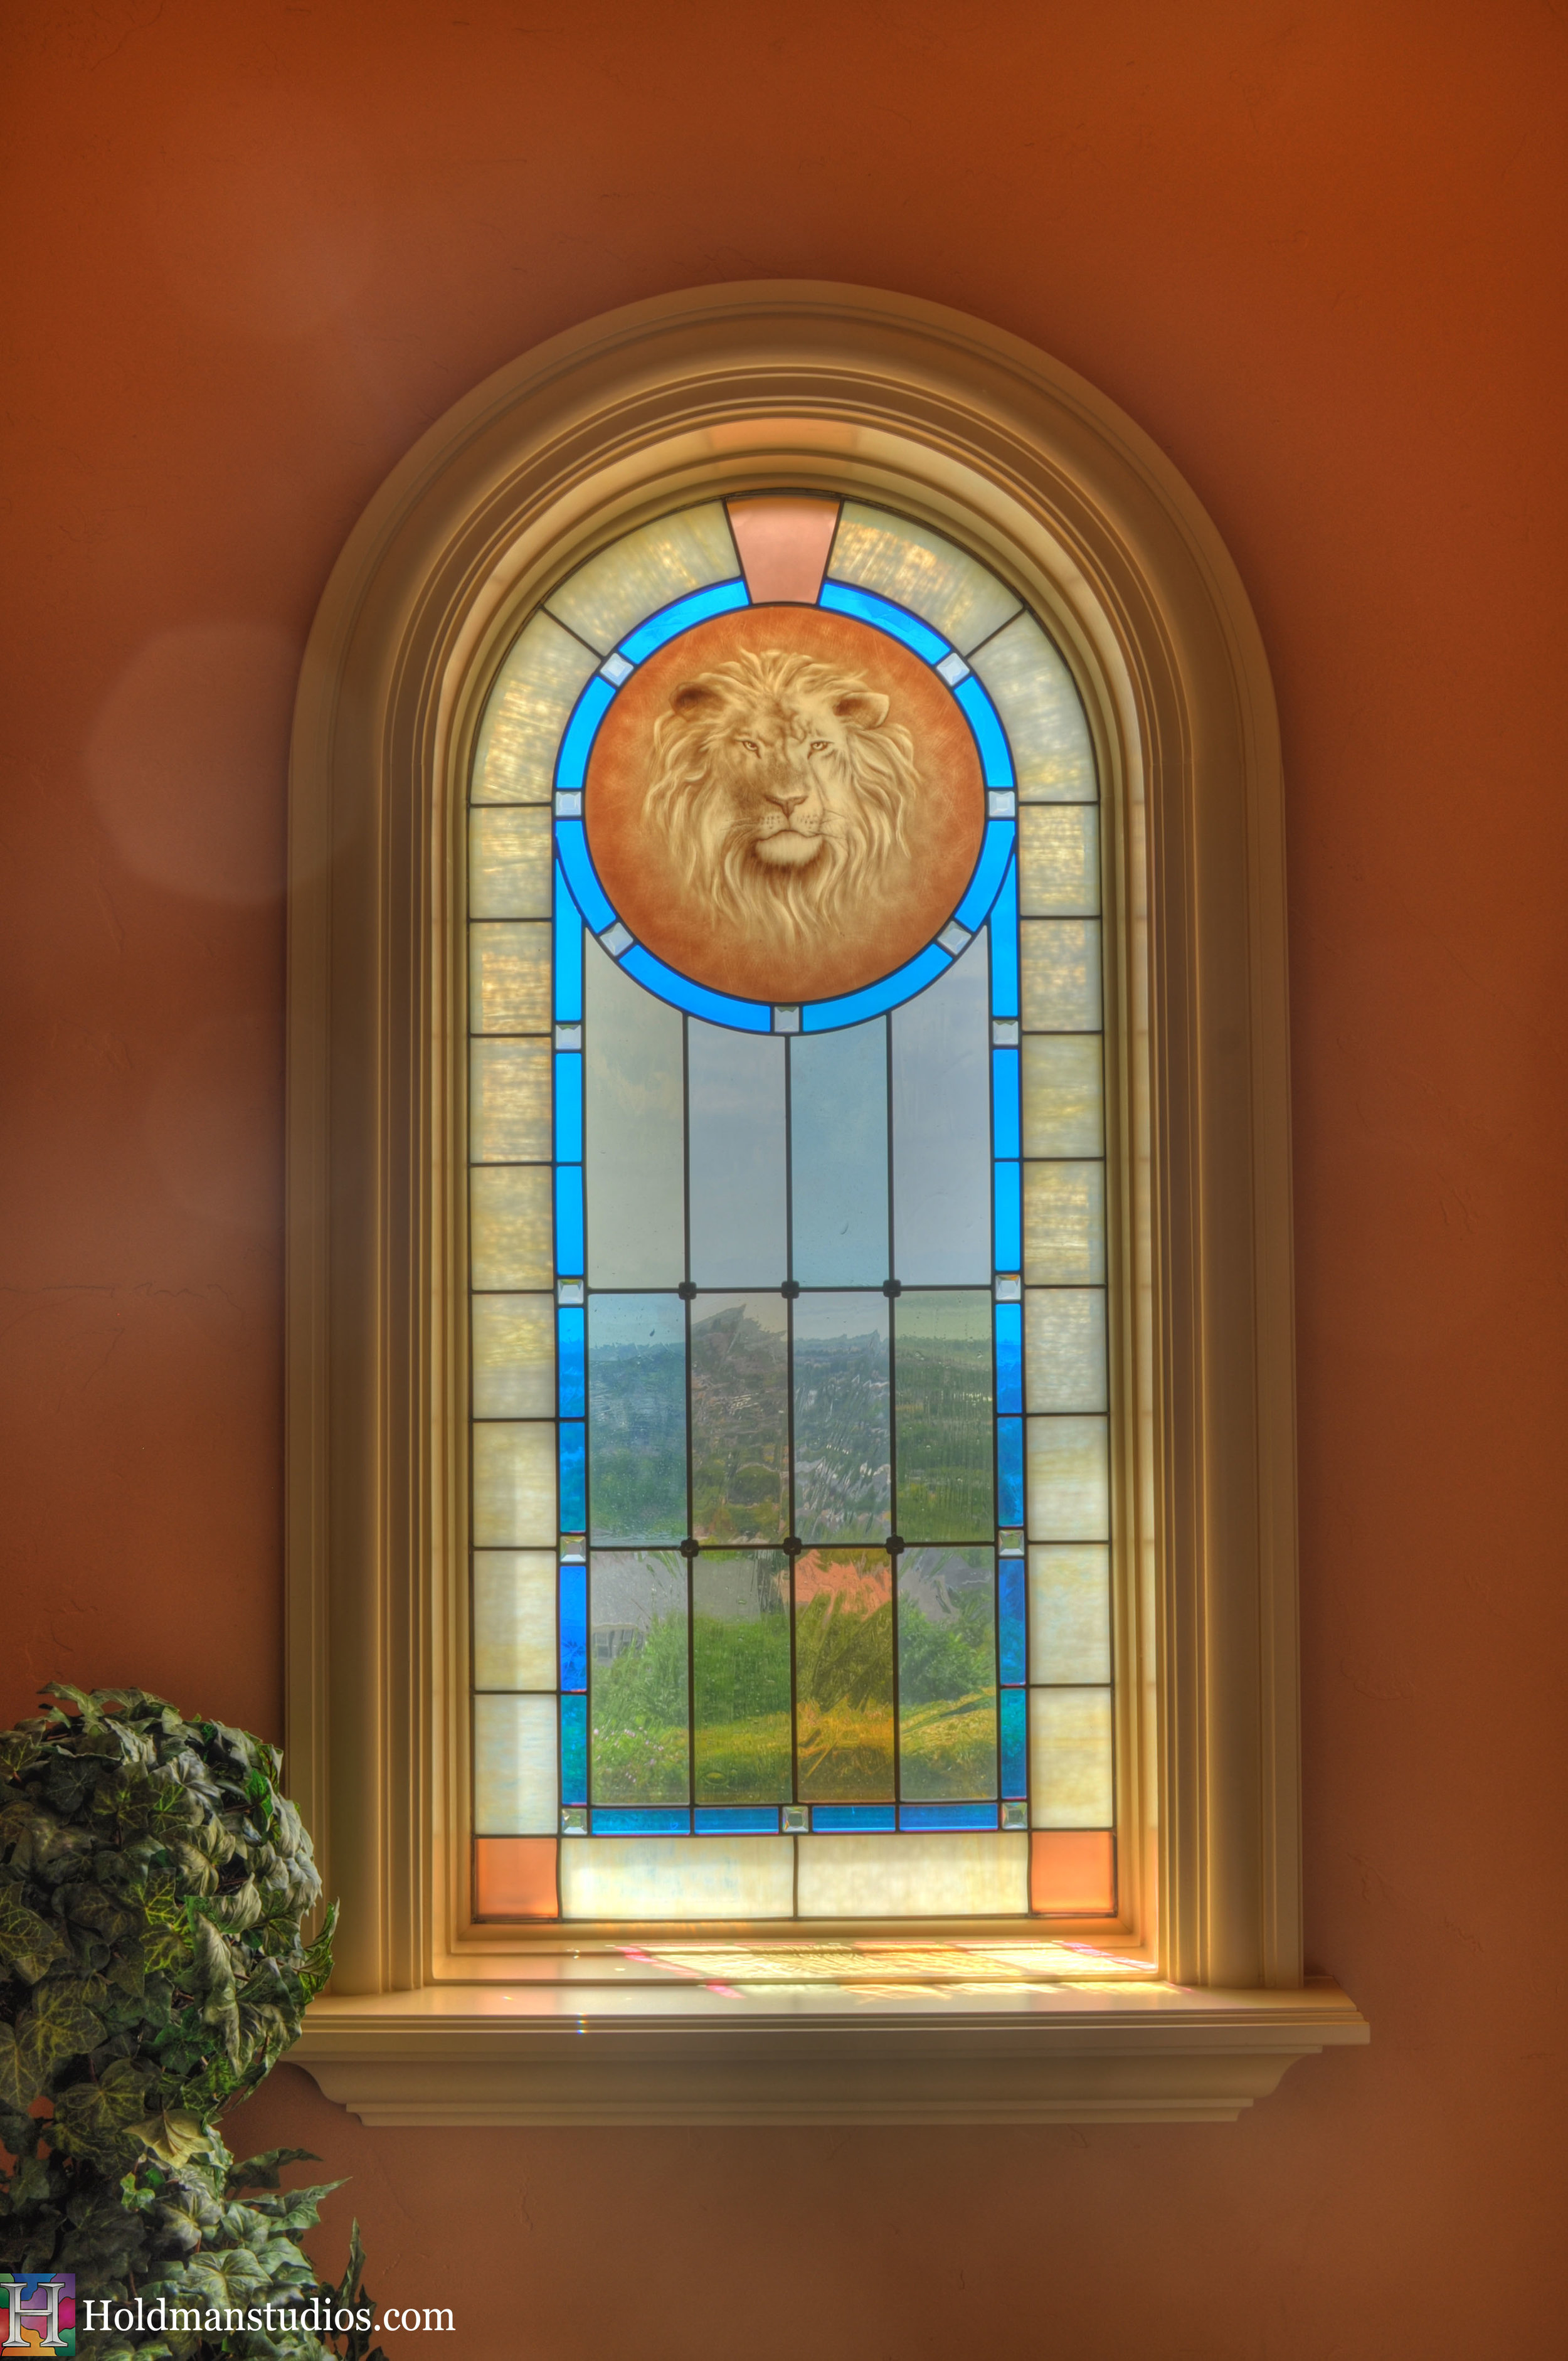 Stained glass lion window. Created by artists under the direction of Tom Holdman at Holdman Studios.